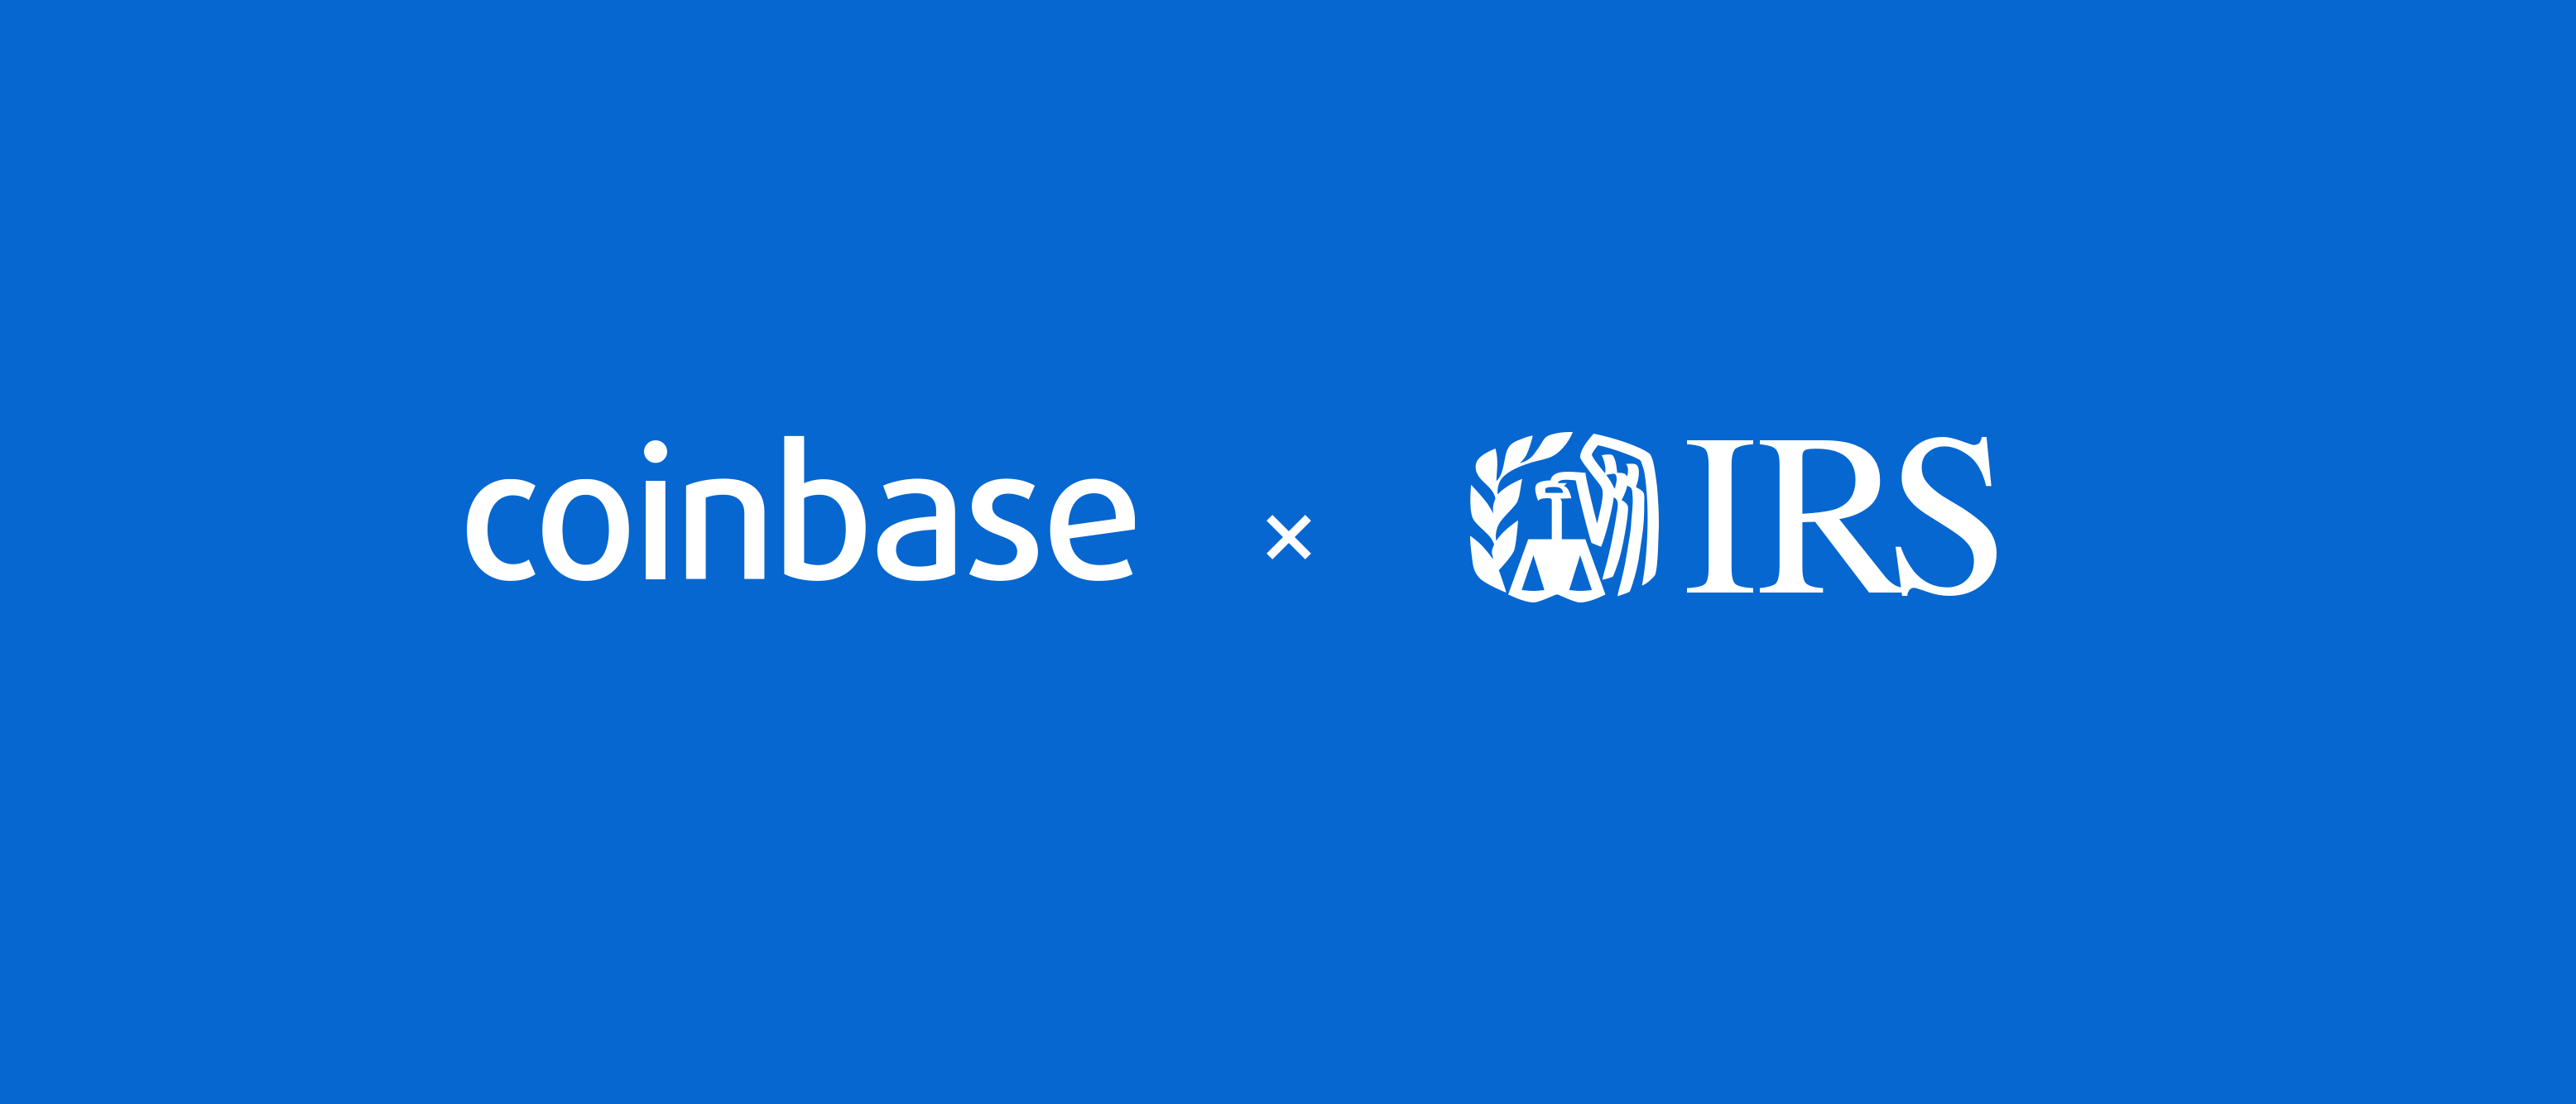 Does Coinbase Report to the IRS?